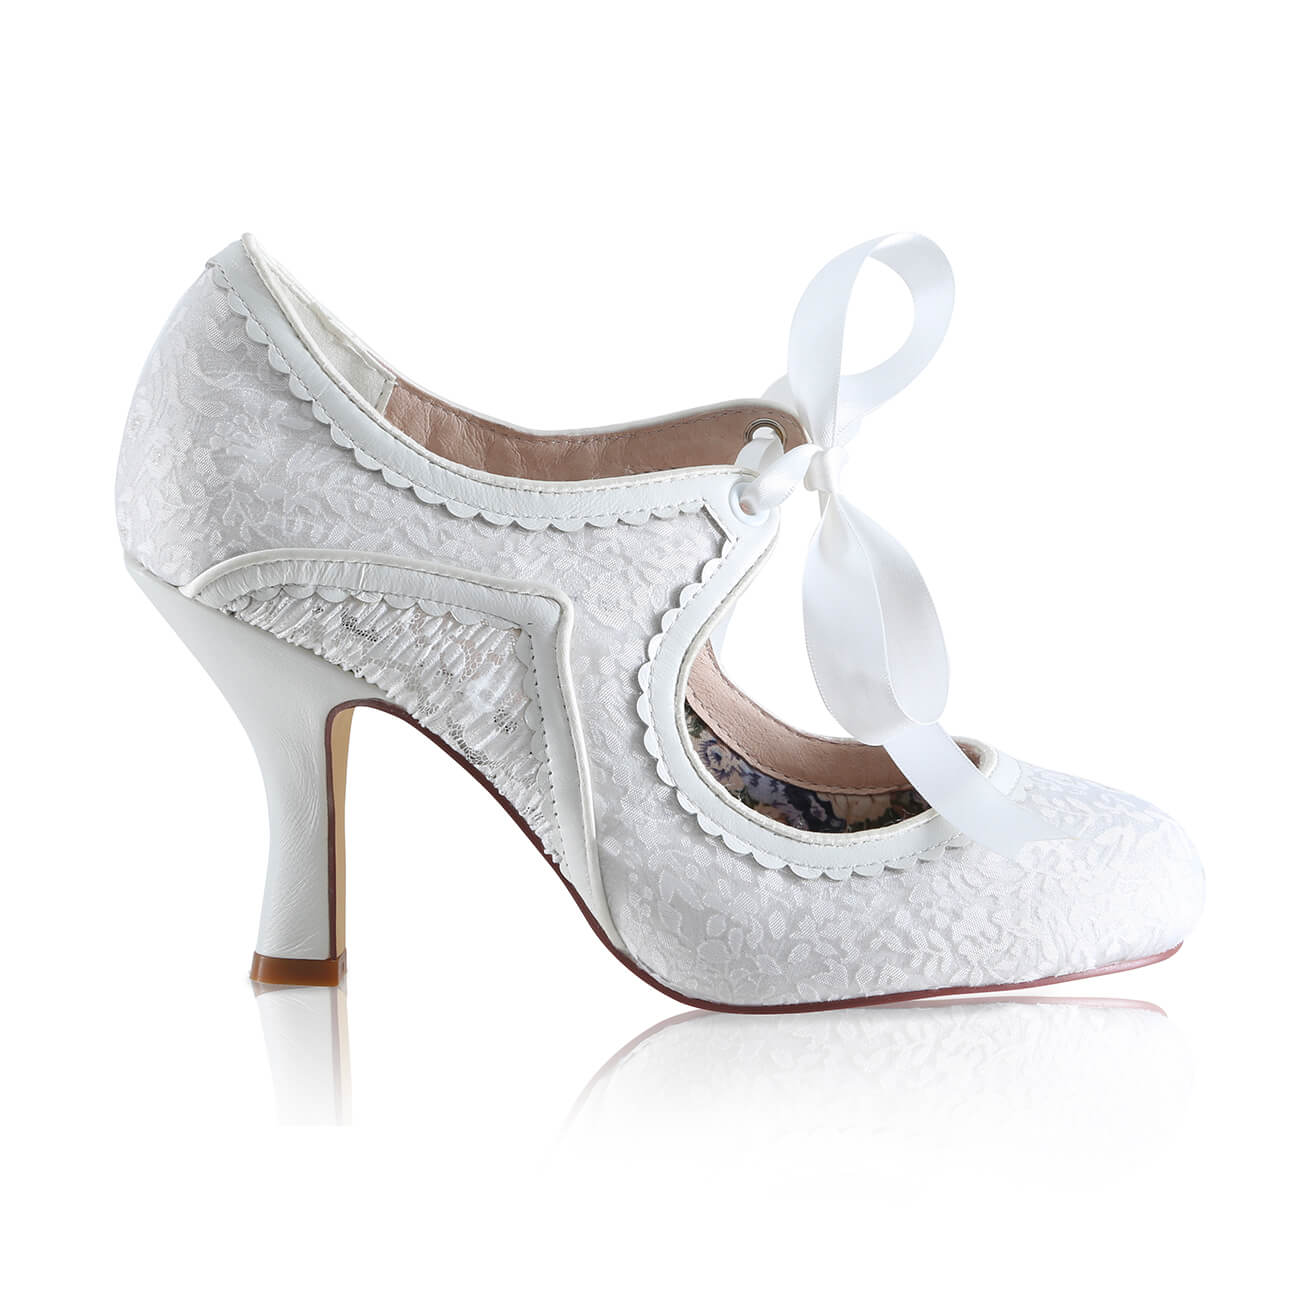 bianca ivory lace bridal shoe boots with leather heels and ribbon tie